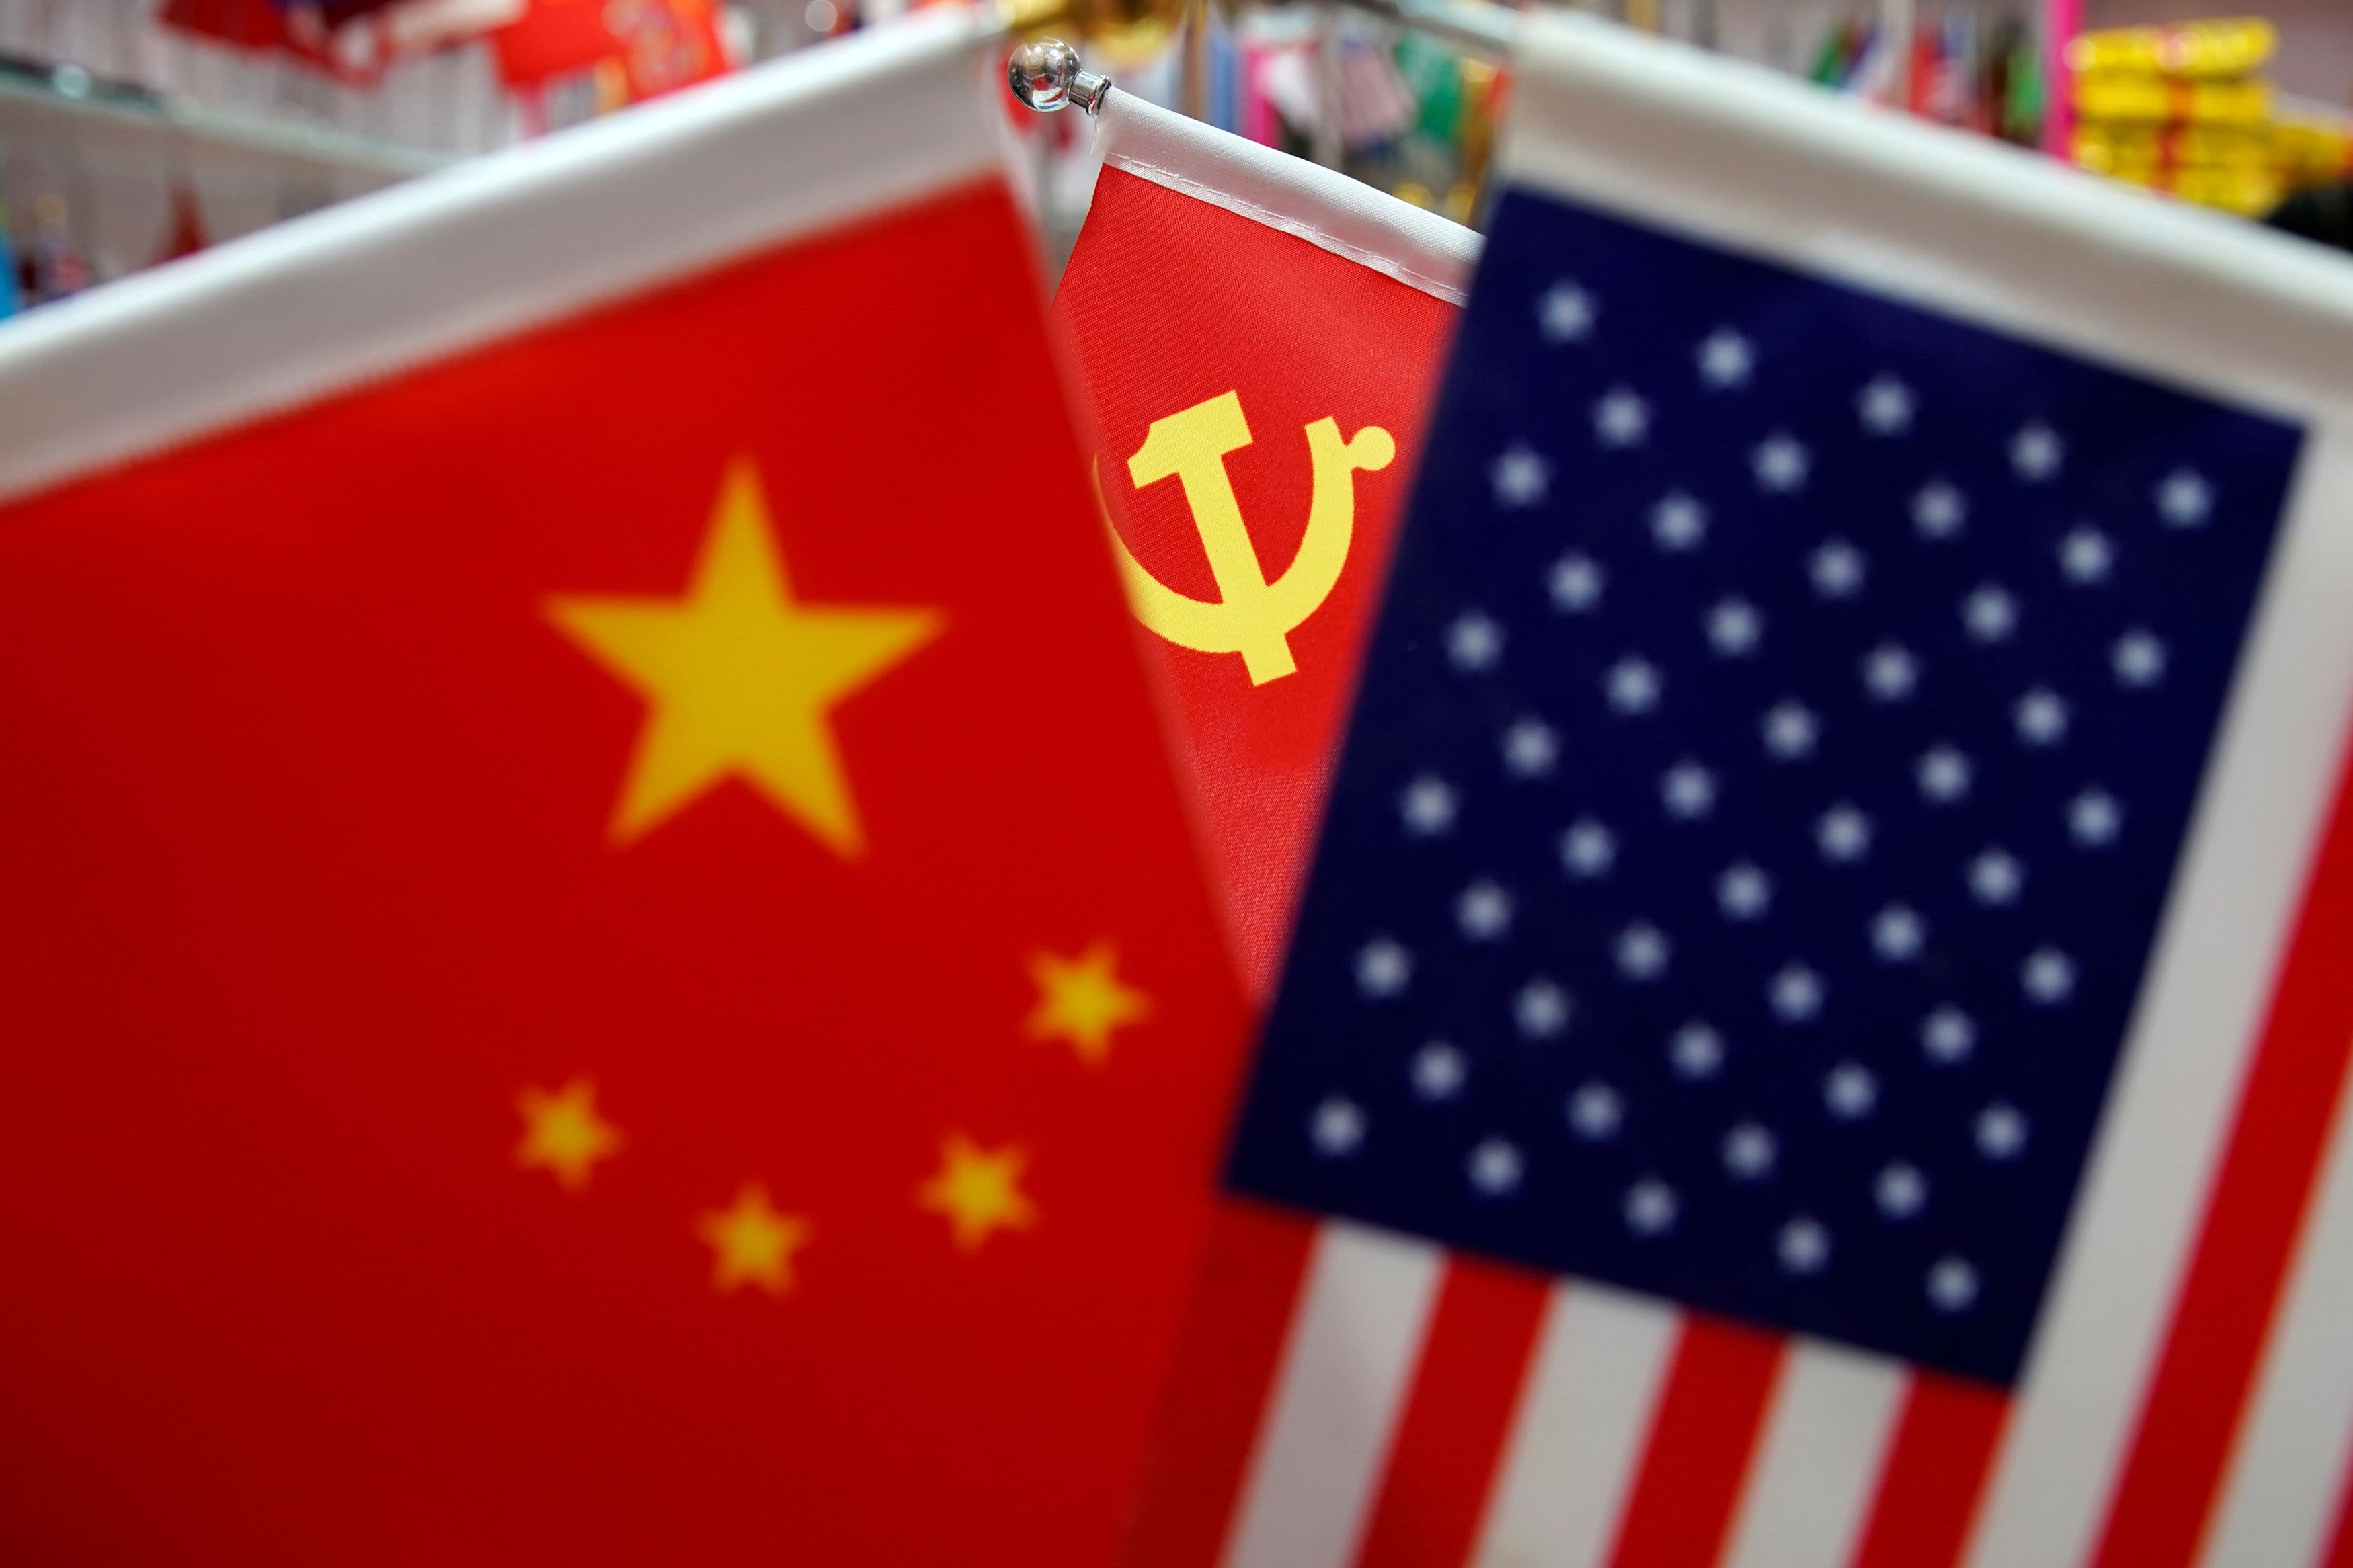 Chinese Foreign Minister Takes Firm Tone, Calls for 'Non-Interference' Between China and the U.S. – NBC Bay Area